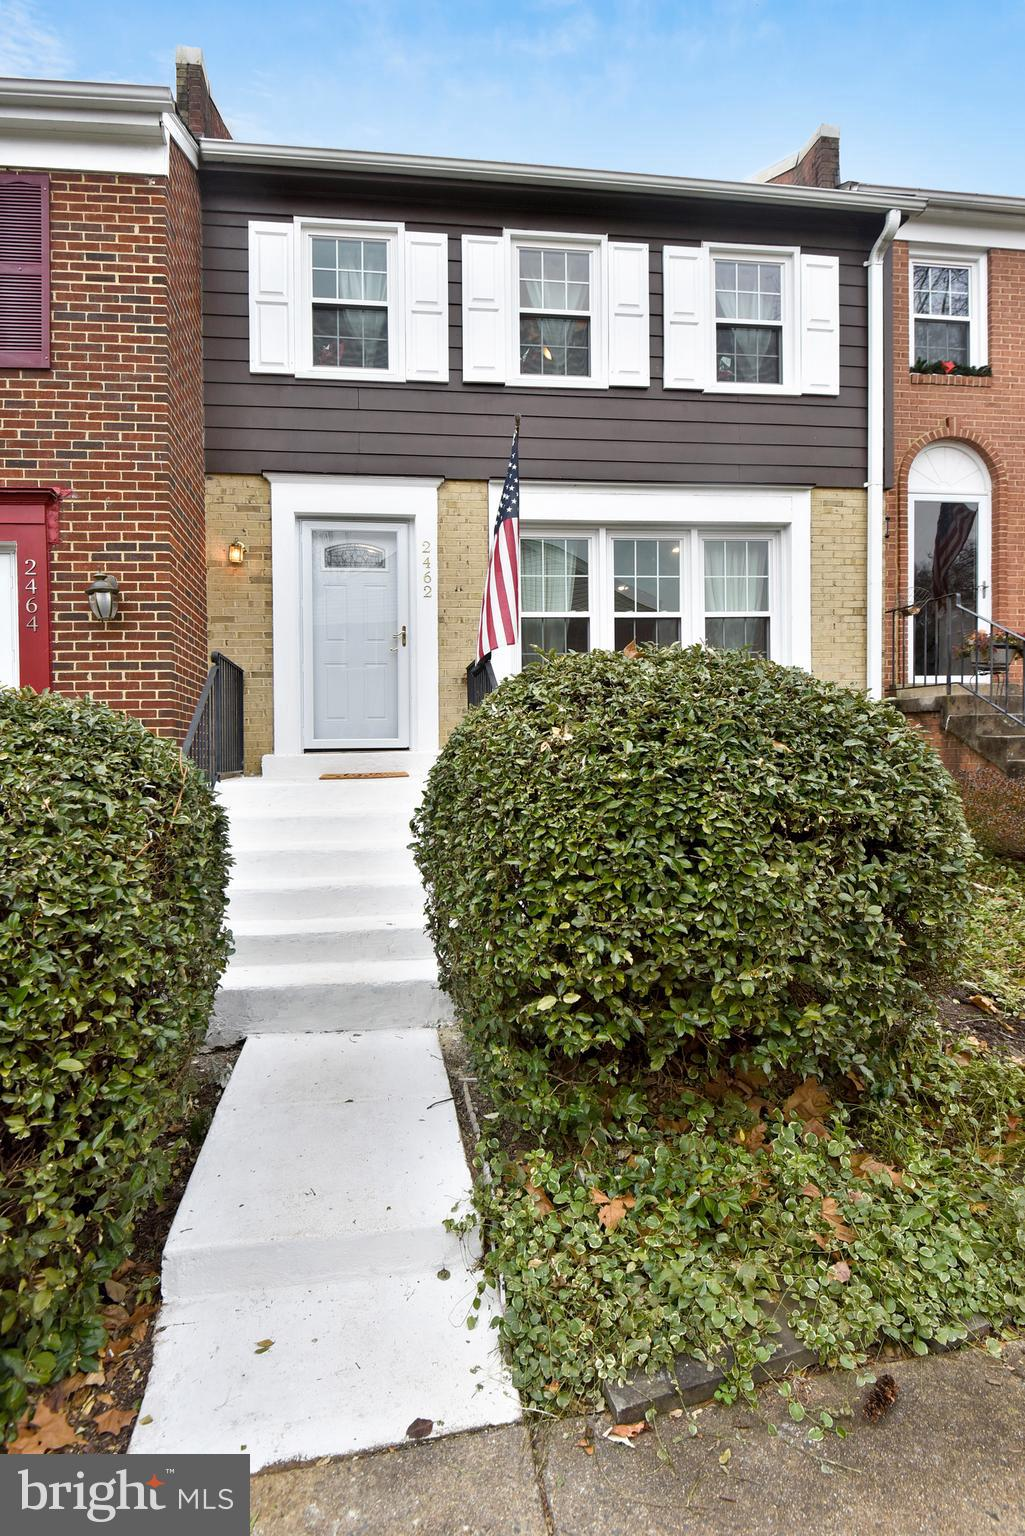 Open House Saturday 12/15 2 pm - 4 pm.  Sunday 12/16 1 pm - 4 pm!  An outstanding find so close to Alexandria. This 3 Bed, 3.5 Bath townhouse at a great price and great location.  A townhouse that is close to everything!  Updated throughout, Roof in 2011, Windows in 2015, Water Heater in 2017, Front Door, Granite, and Kitchen flooring just recently. The lower level could be used as a suite with it's full bath and Refrigerator.  Cherry and Fig tree in the backyard along with a jasmine vine complement the indoor space with a serene outdoor patio. Come see soon!